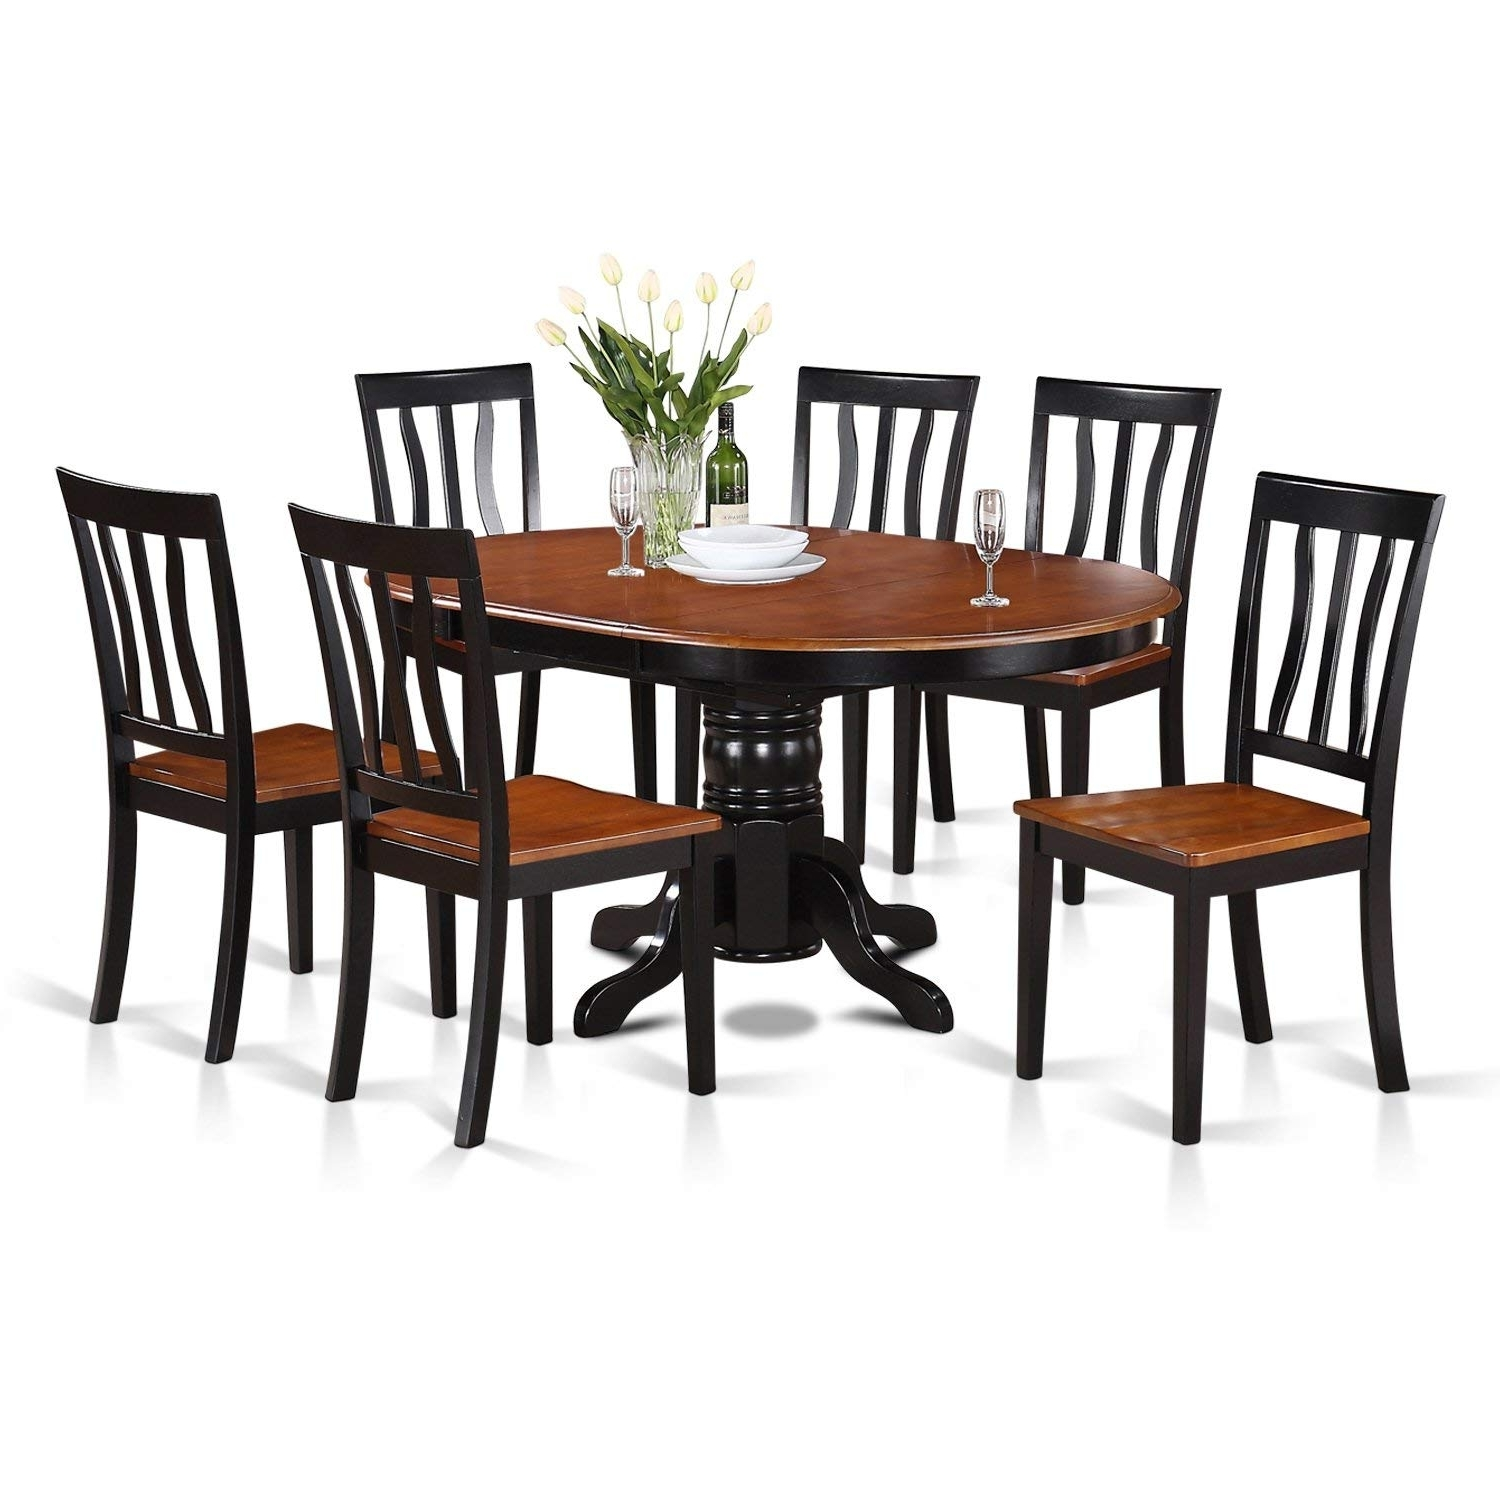 Logan 7 Piece Dining Sets Throughout Most Current Amazon: East West Furniture Avat7 Blk W 7 Piece Dining Table Set (View 6 of 25)